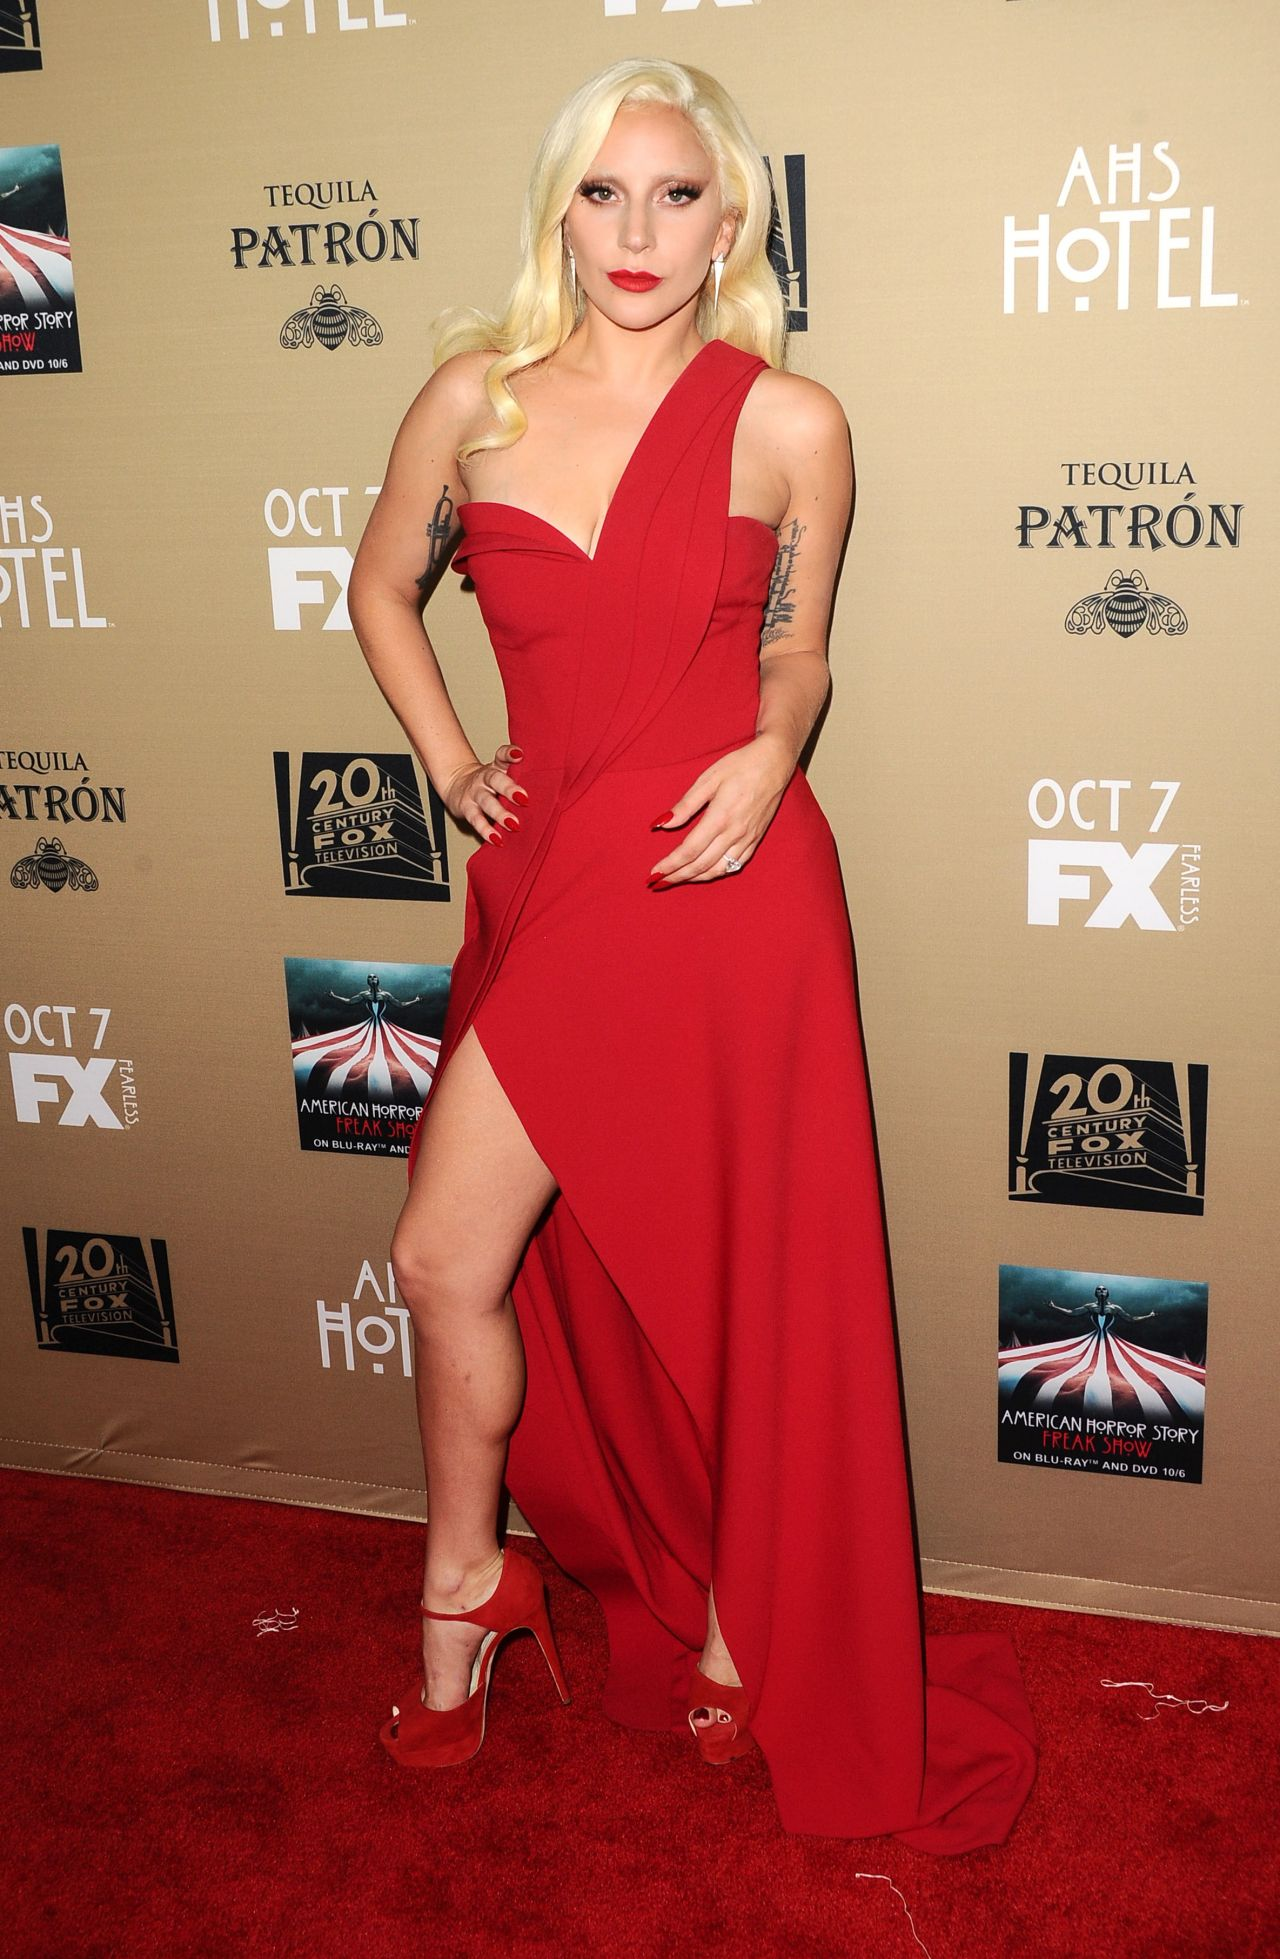 lady-gaga-fx-s-american-horror-story-hotel-screening-in-los-angeles_7